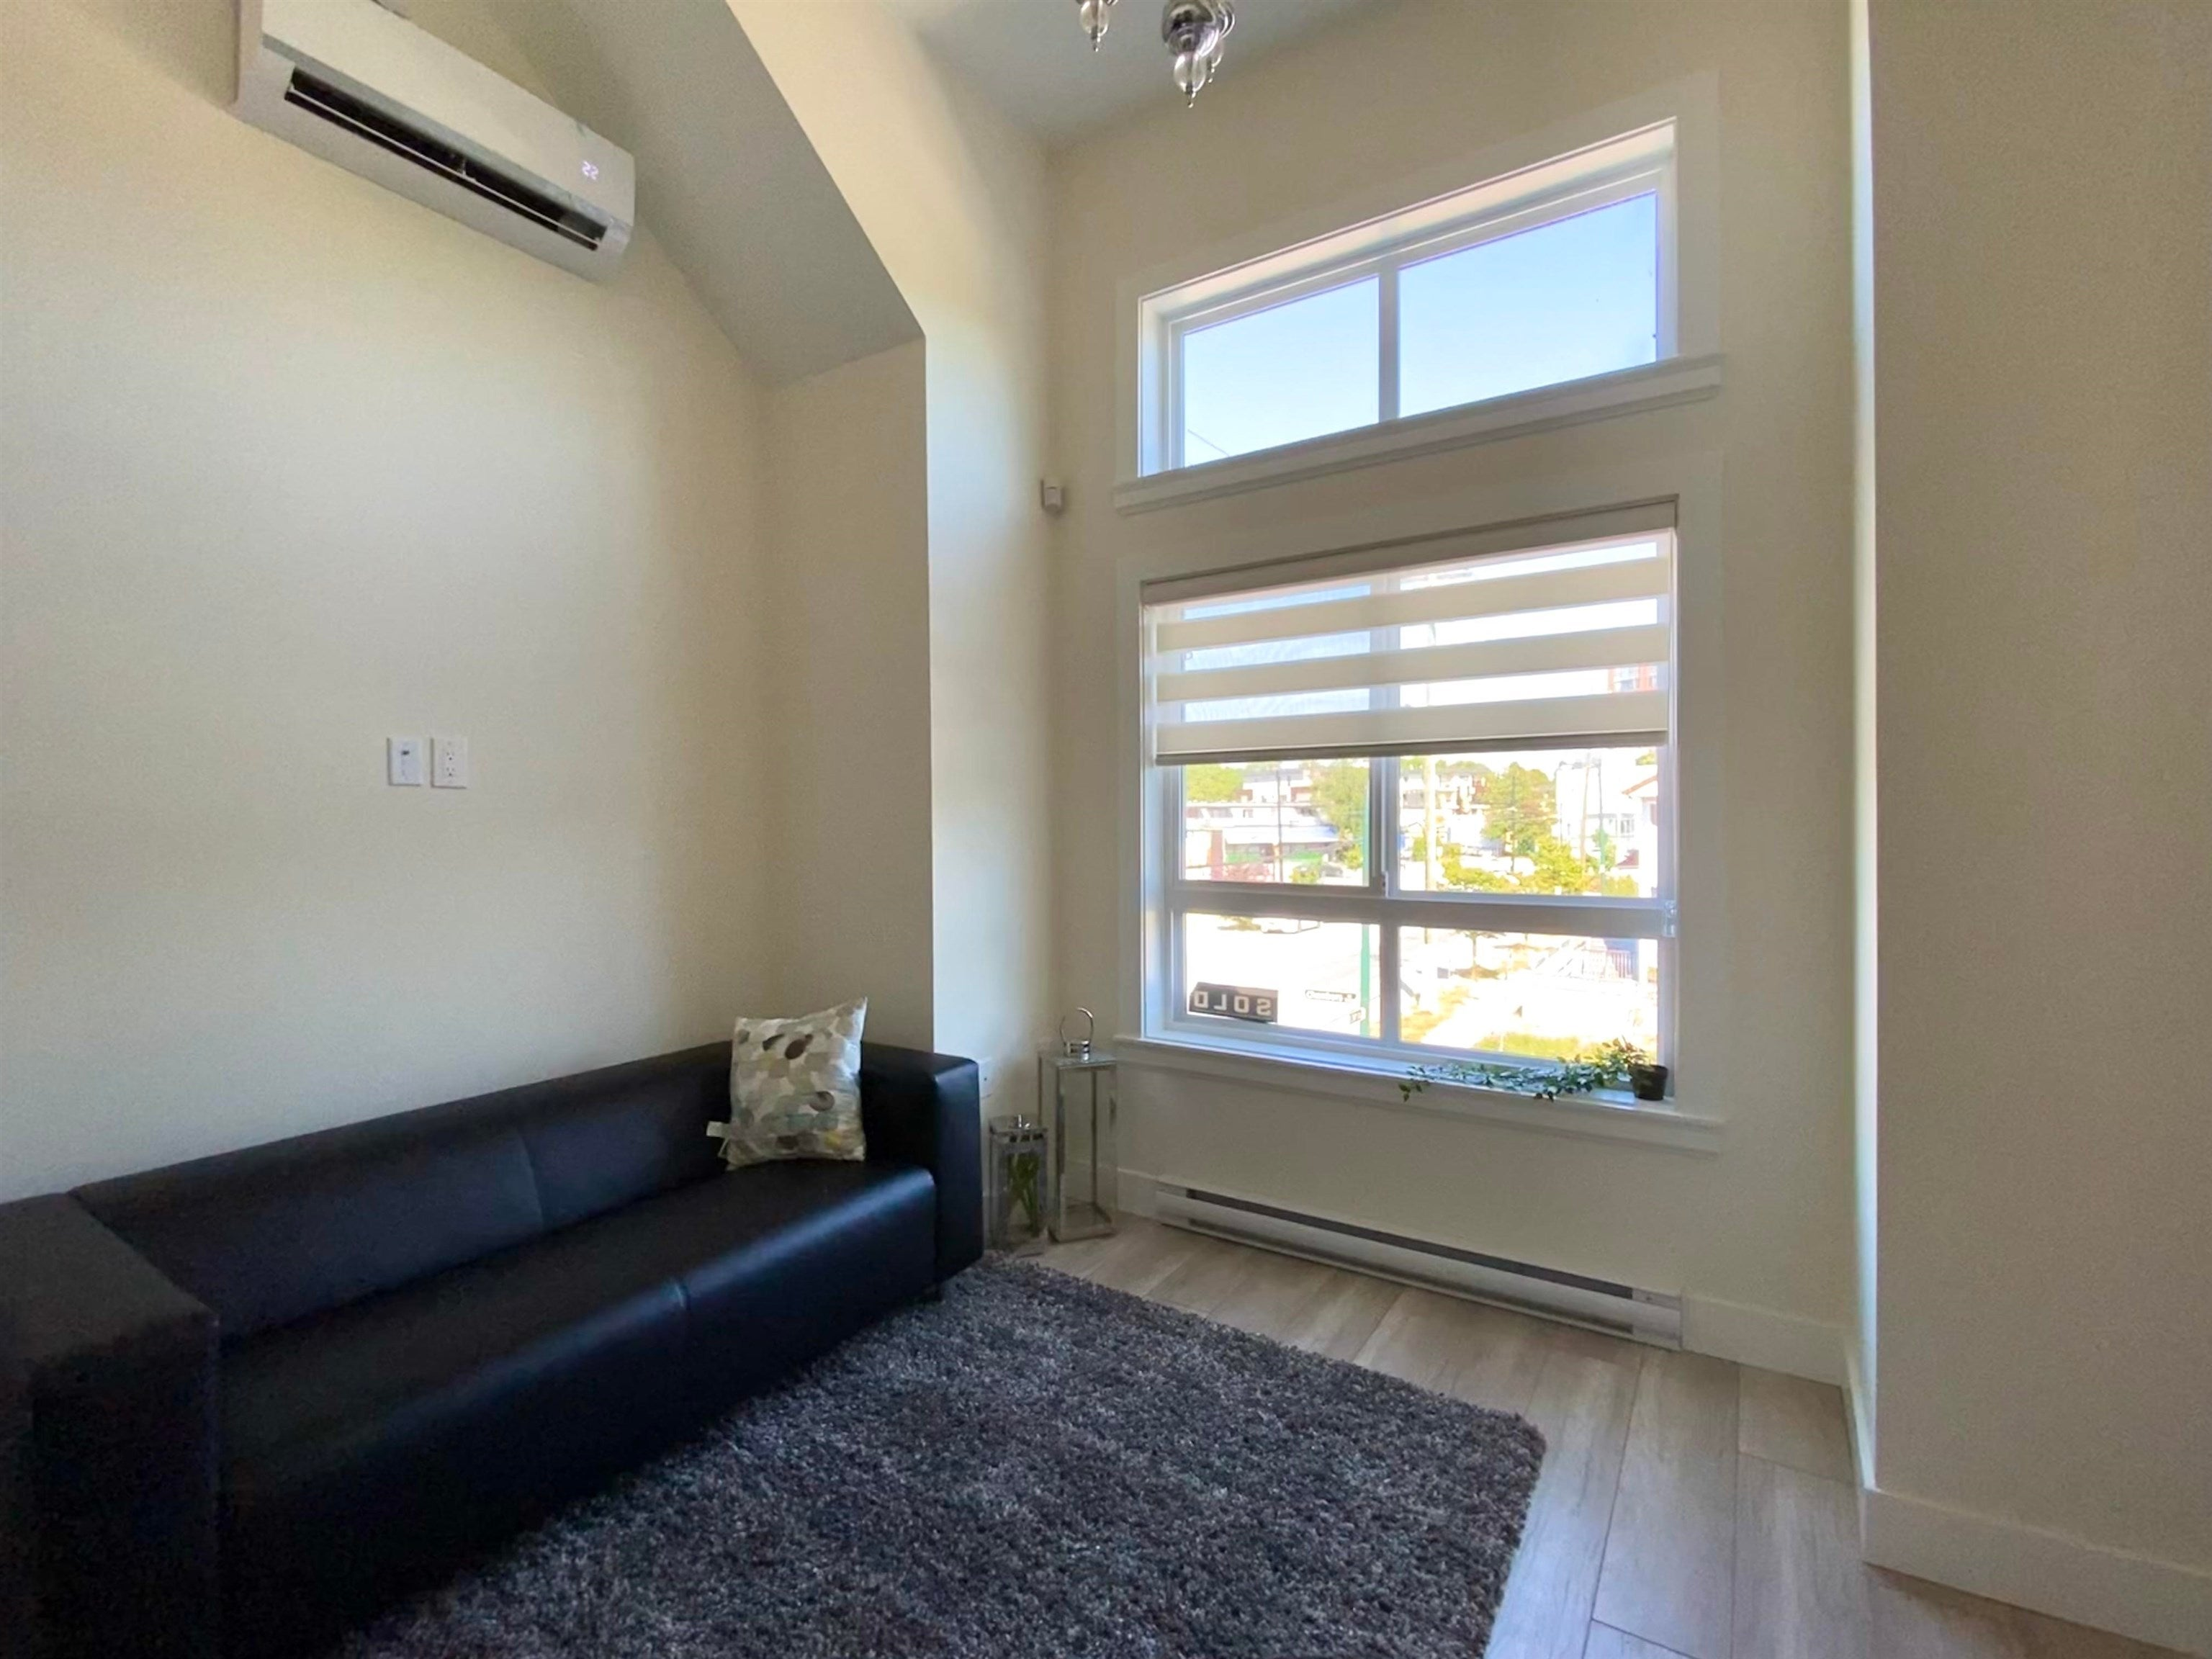 5001 CHAMBERS STREET - Collingwood VE Townhouse for sale, 3 Bedrooms (R2621910) - #1